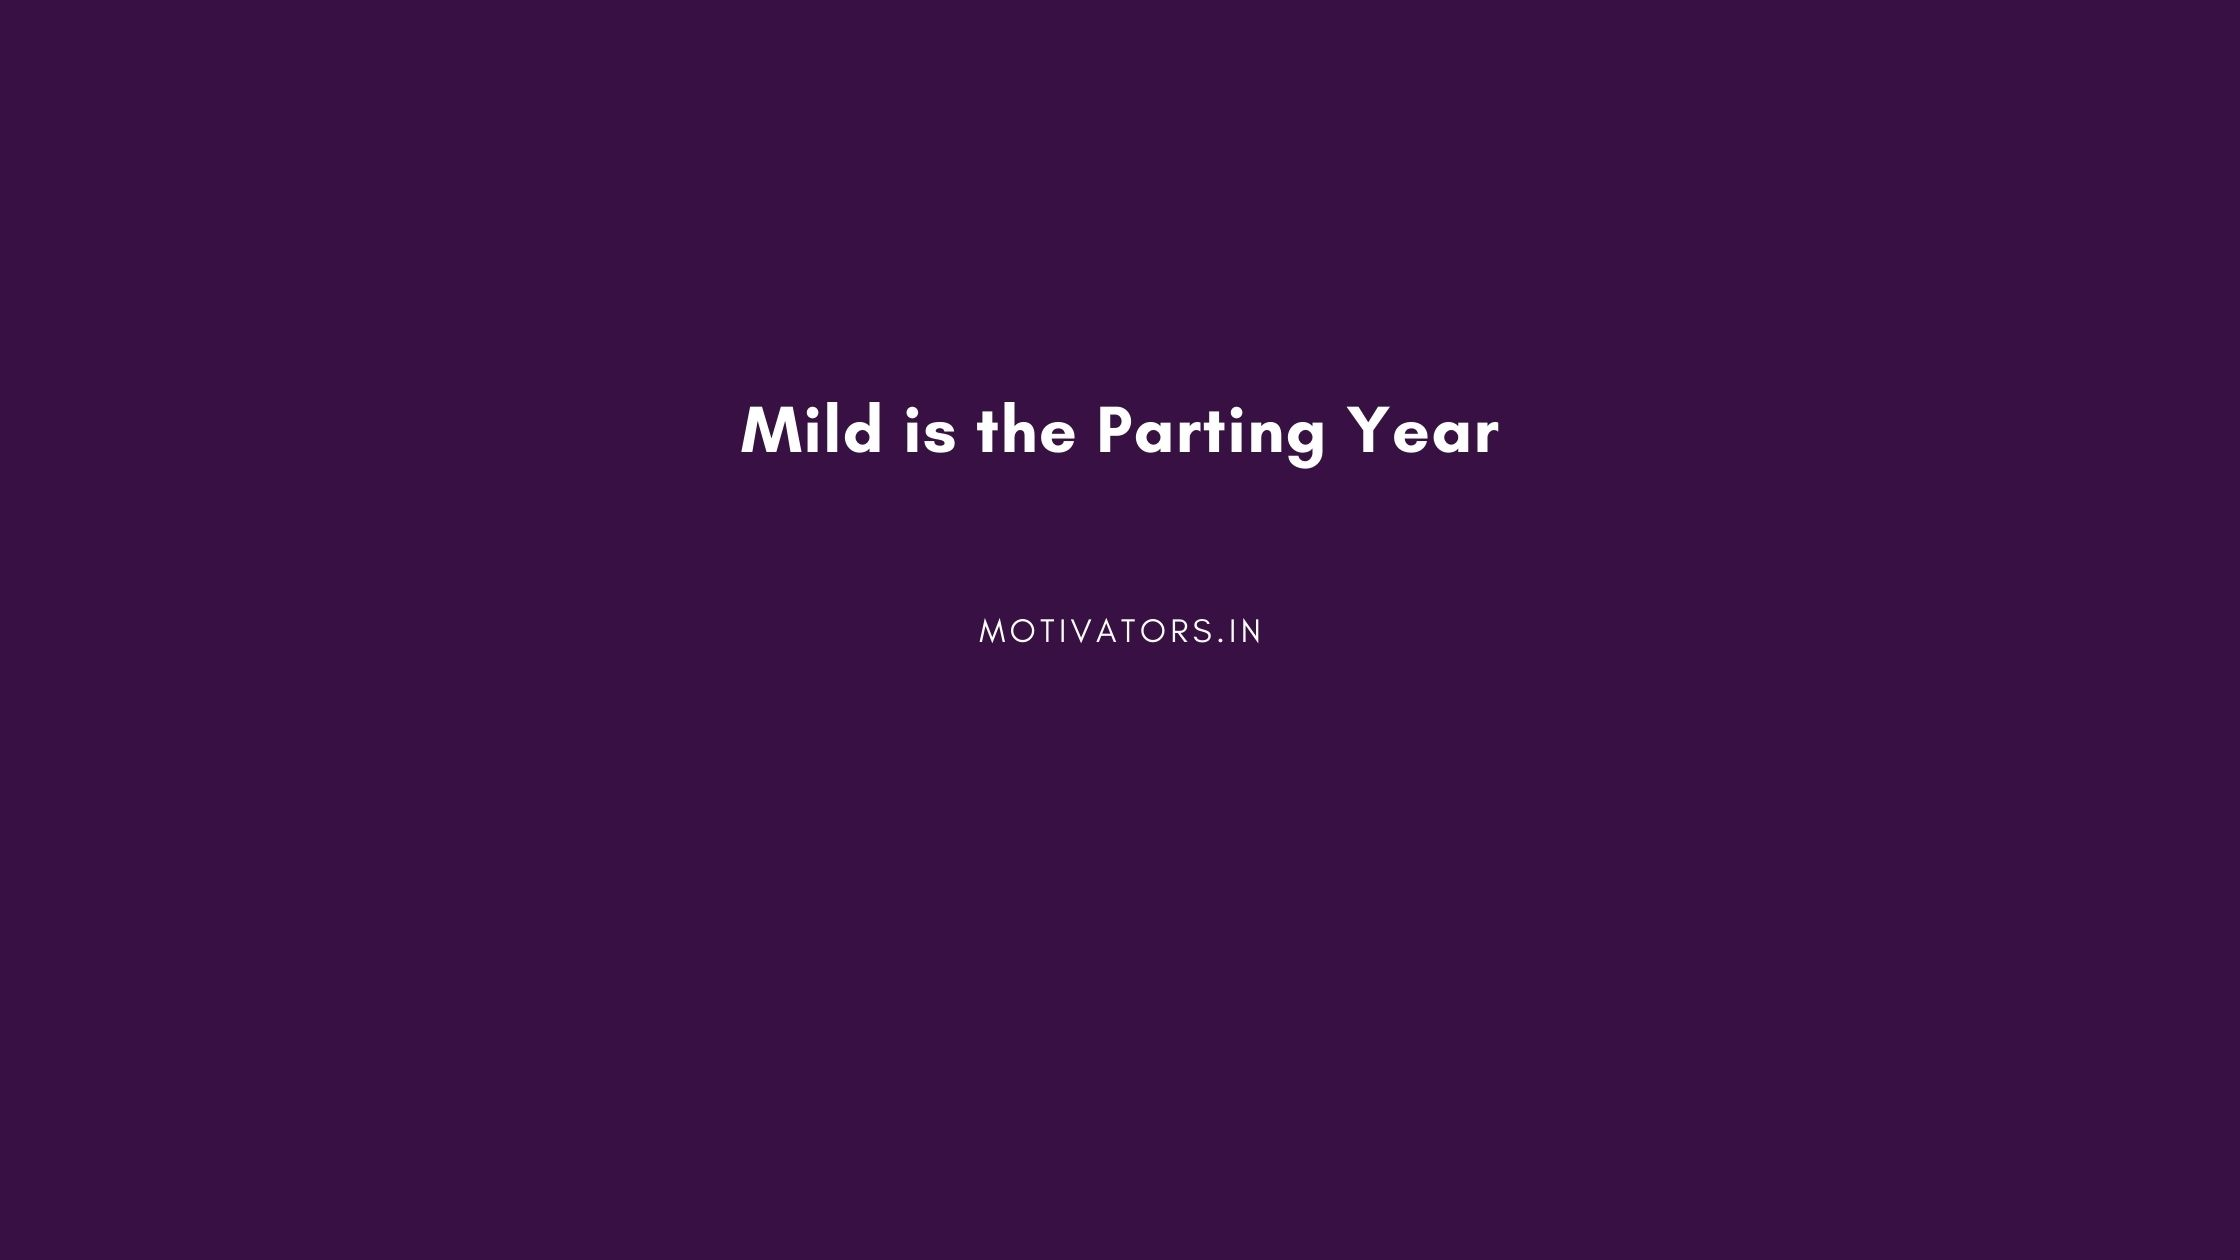 Mild is the Parting Year